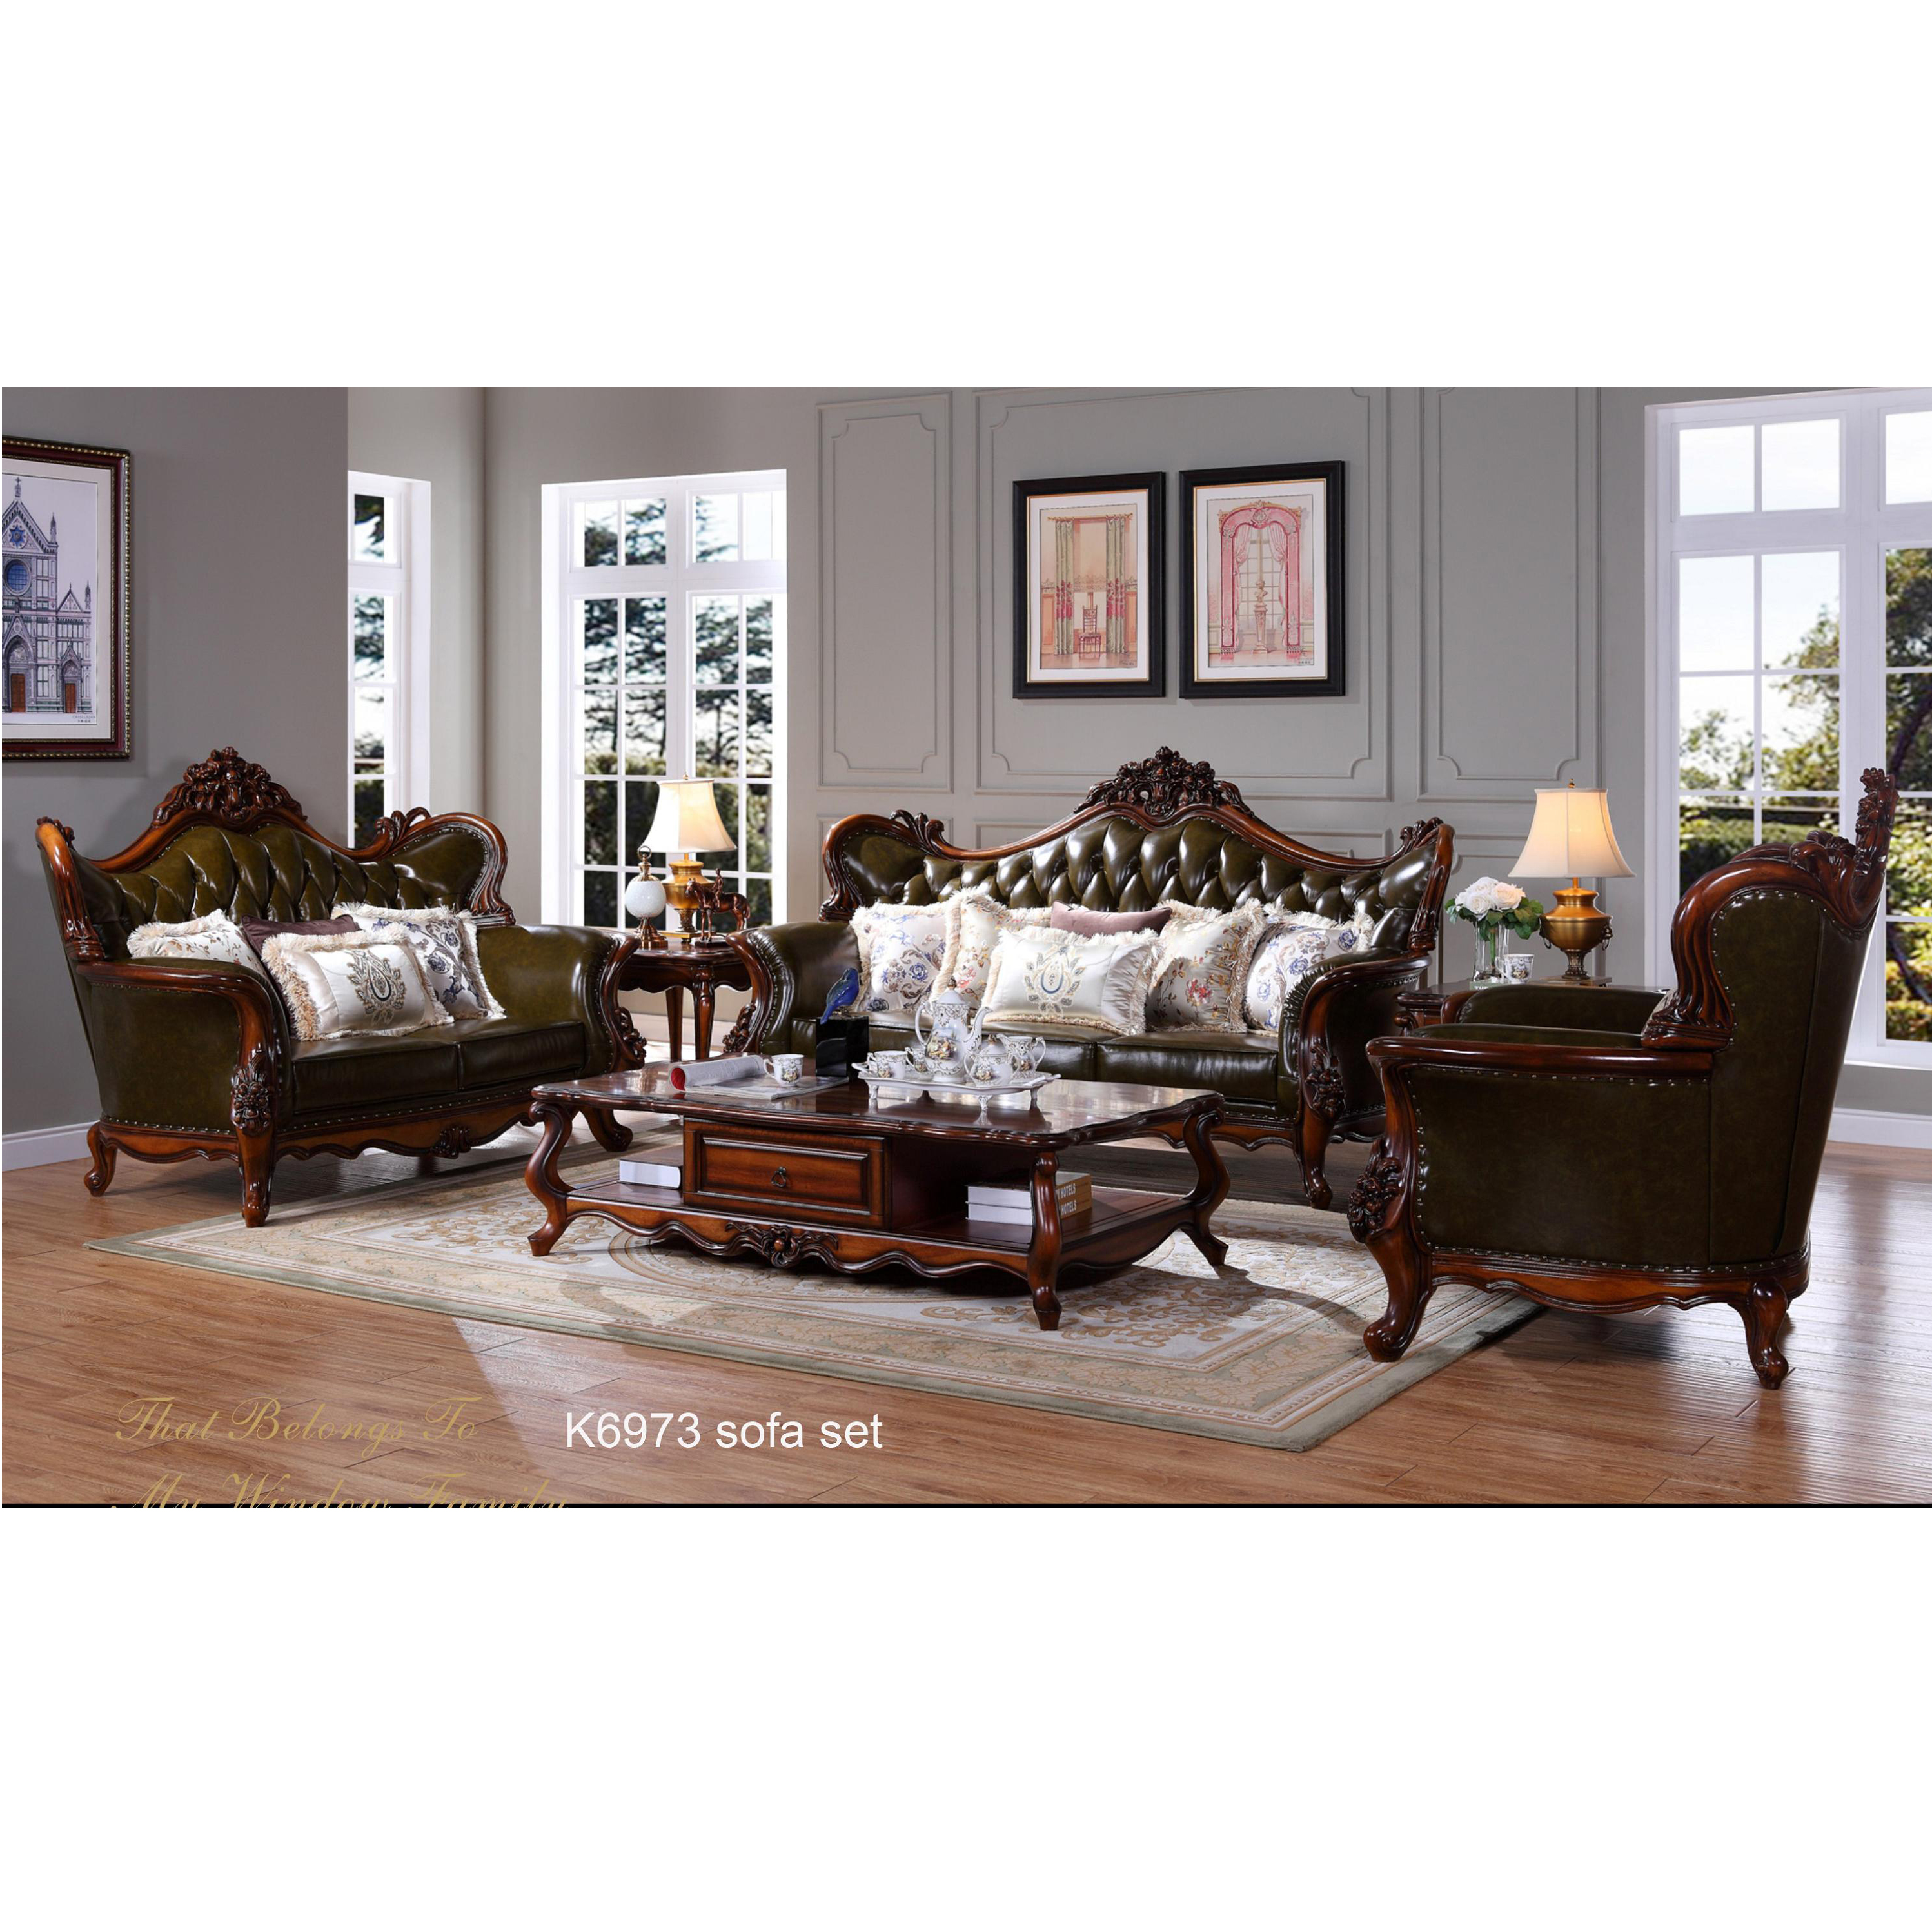 K6973 Hot Sale American Style Rustic Chesterfield Light Leather ...